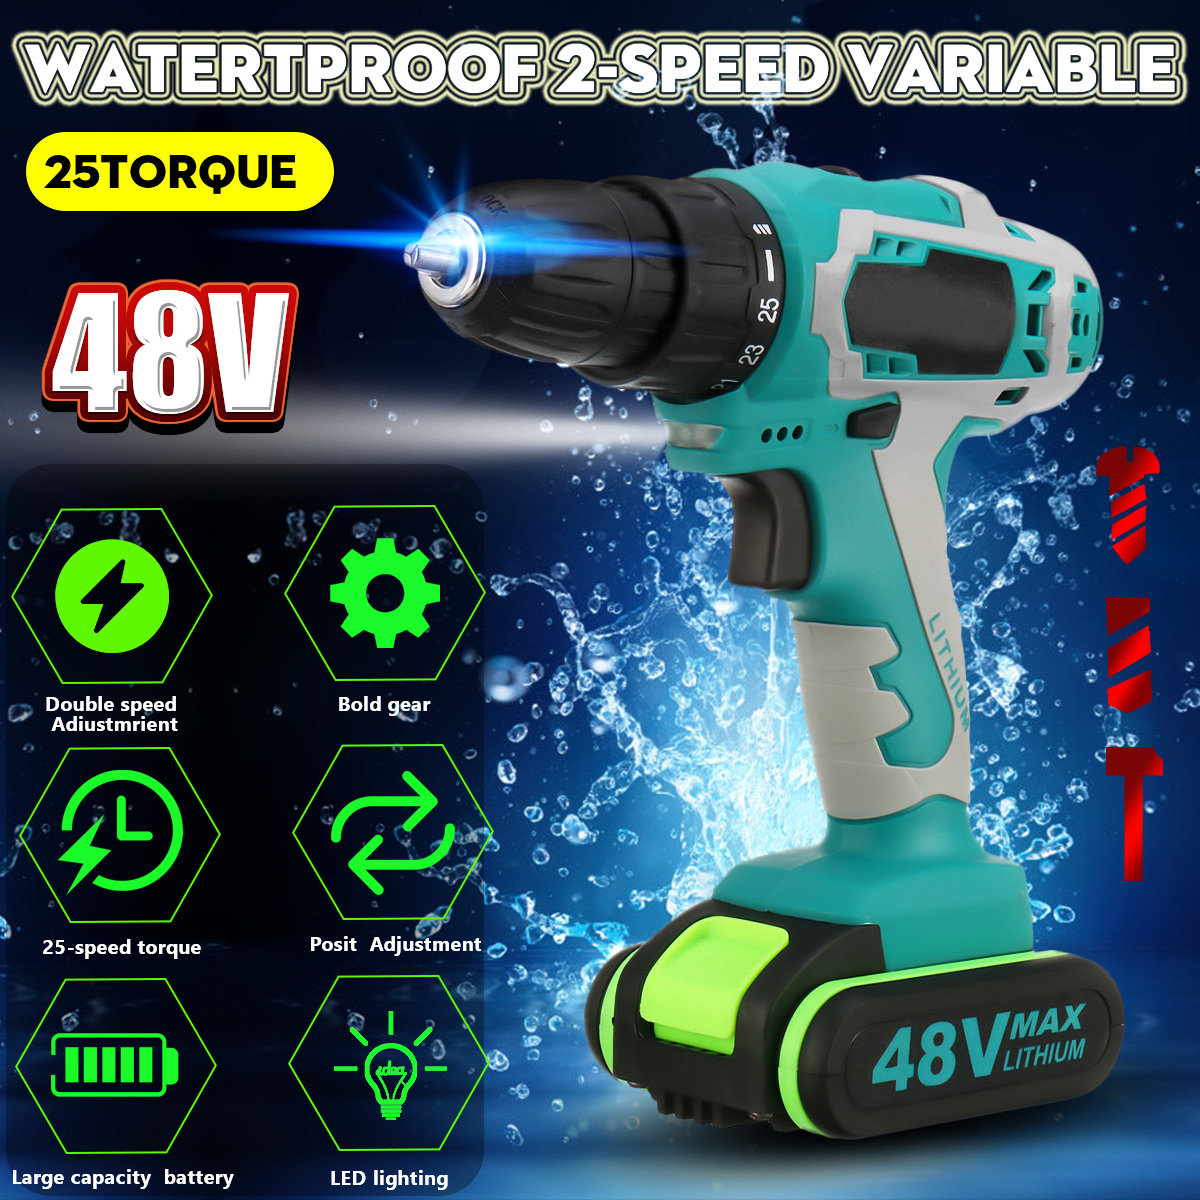 48V 5000mAh 25~28Nm 25-speed Torque Double Speed Brushless Cordless Electric Drill Screwdriver Hammer LED lighting48V 5000mAh 25~28Nm 25-speed Torque Double Speed Brushless Cordless Electric Drill Screwdriver Hammer LED lighting